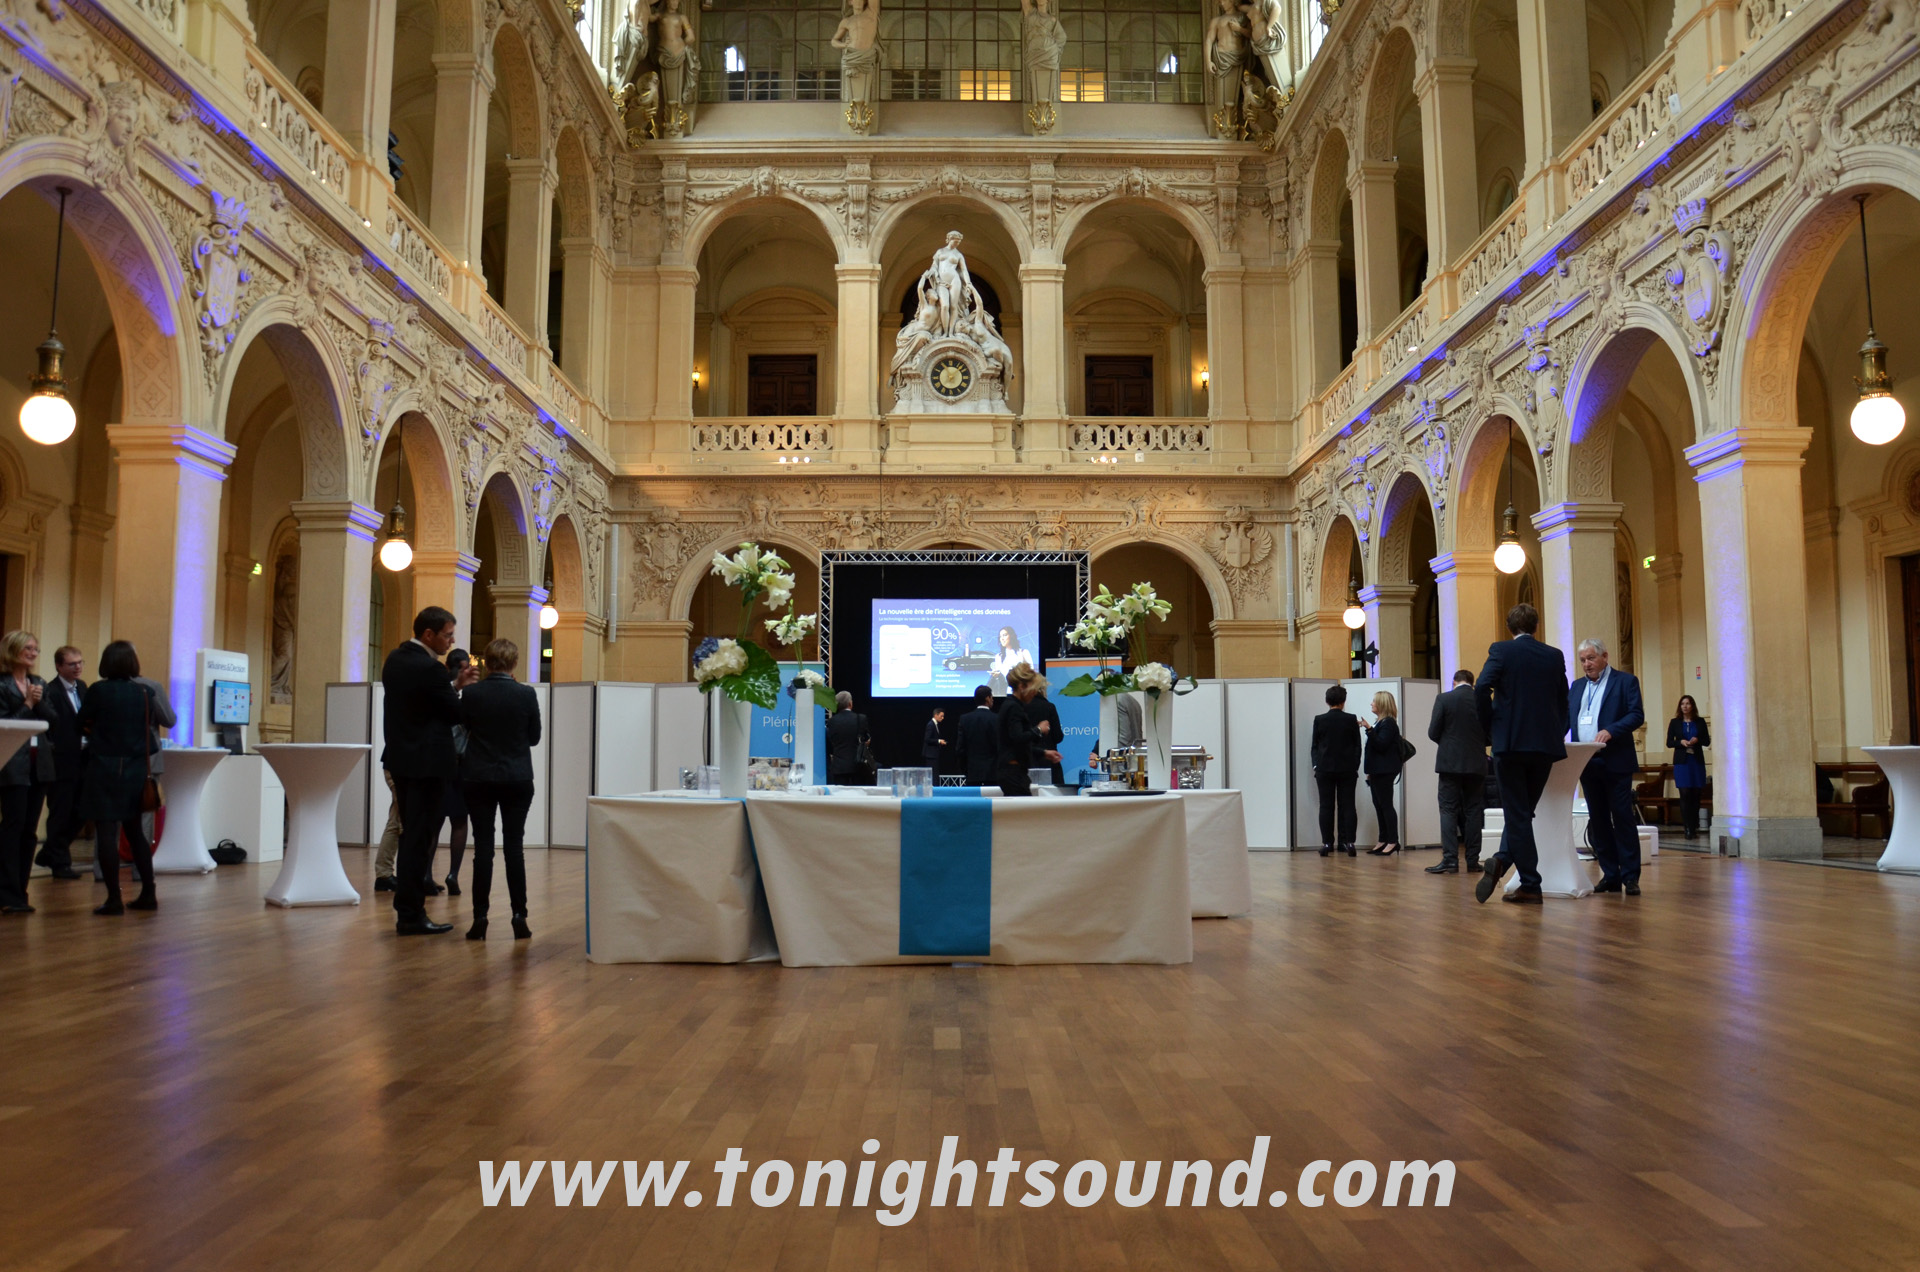 TONIGHTSOUND_SLIDE_18-salesforce-lyon1